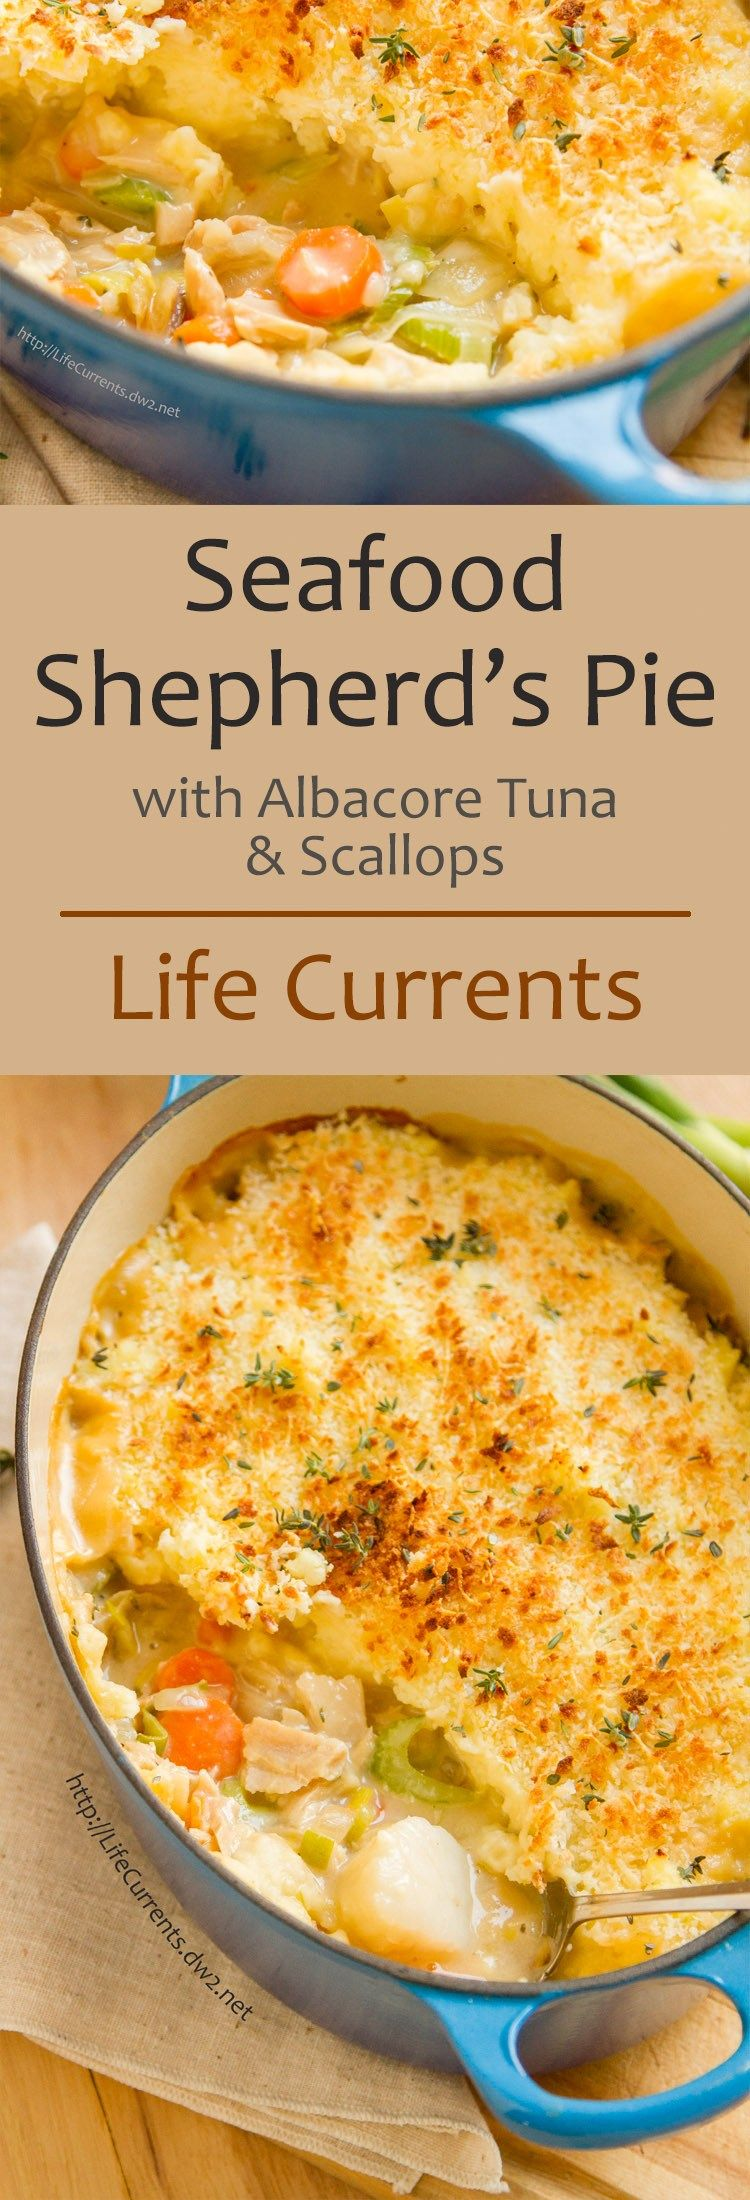 This Seafood Shepherd's Pie or Fisherman's Pie would make a really impressive dinner for the fish lover in your family. It's great healthy comfort food, that's filled with seafood goodness, lots of veggies, and a nice flavorful sauce. #seafooddishes